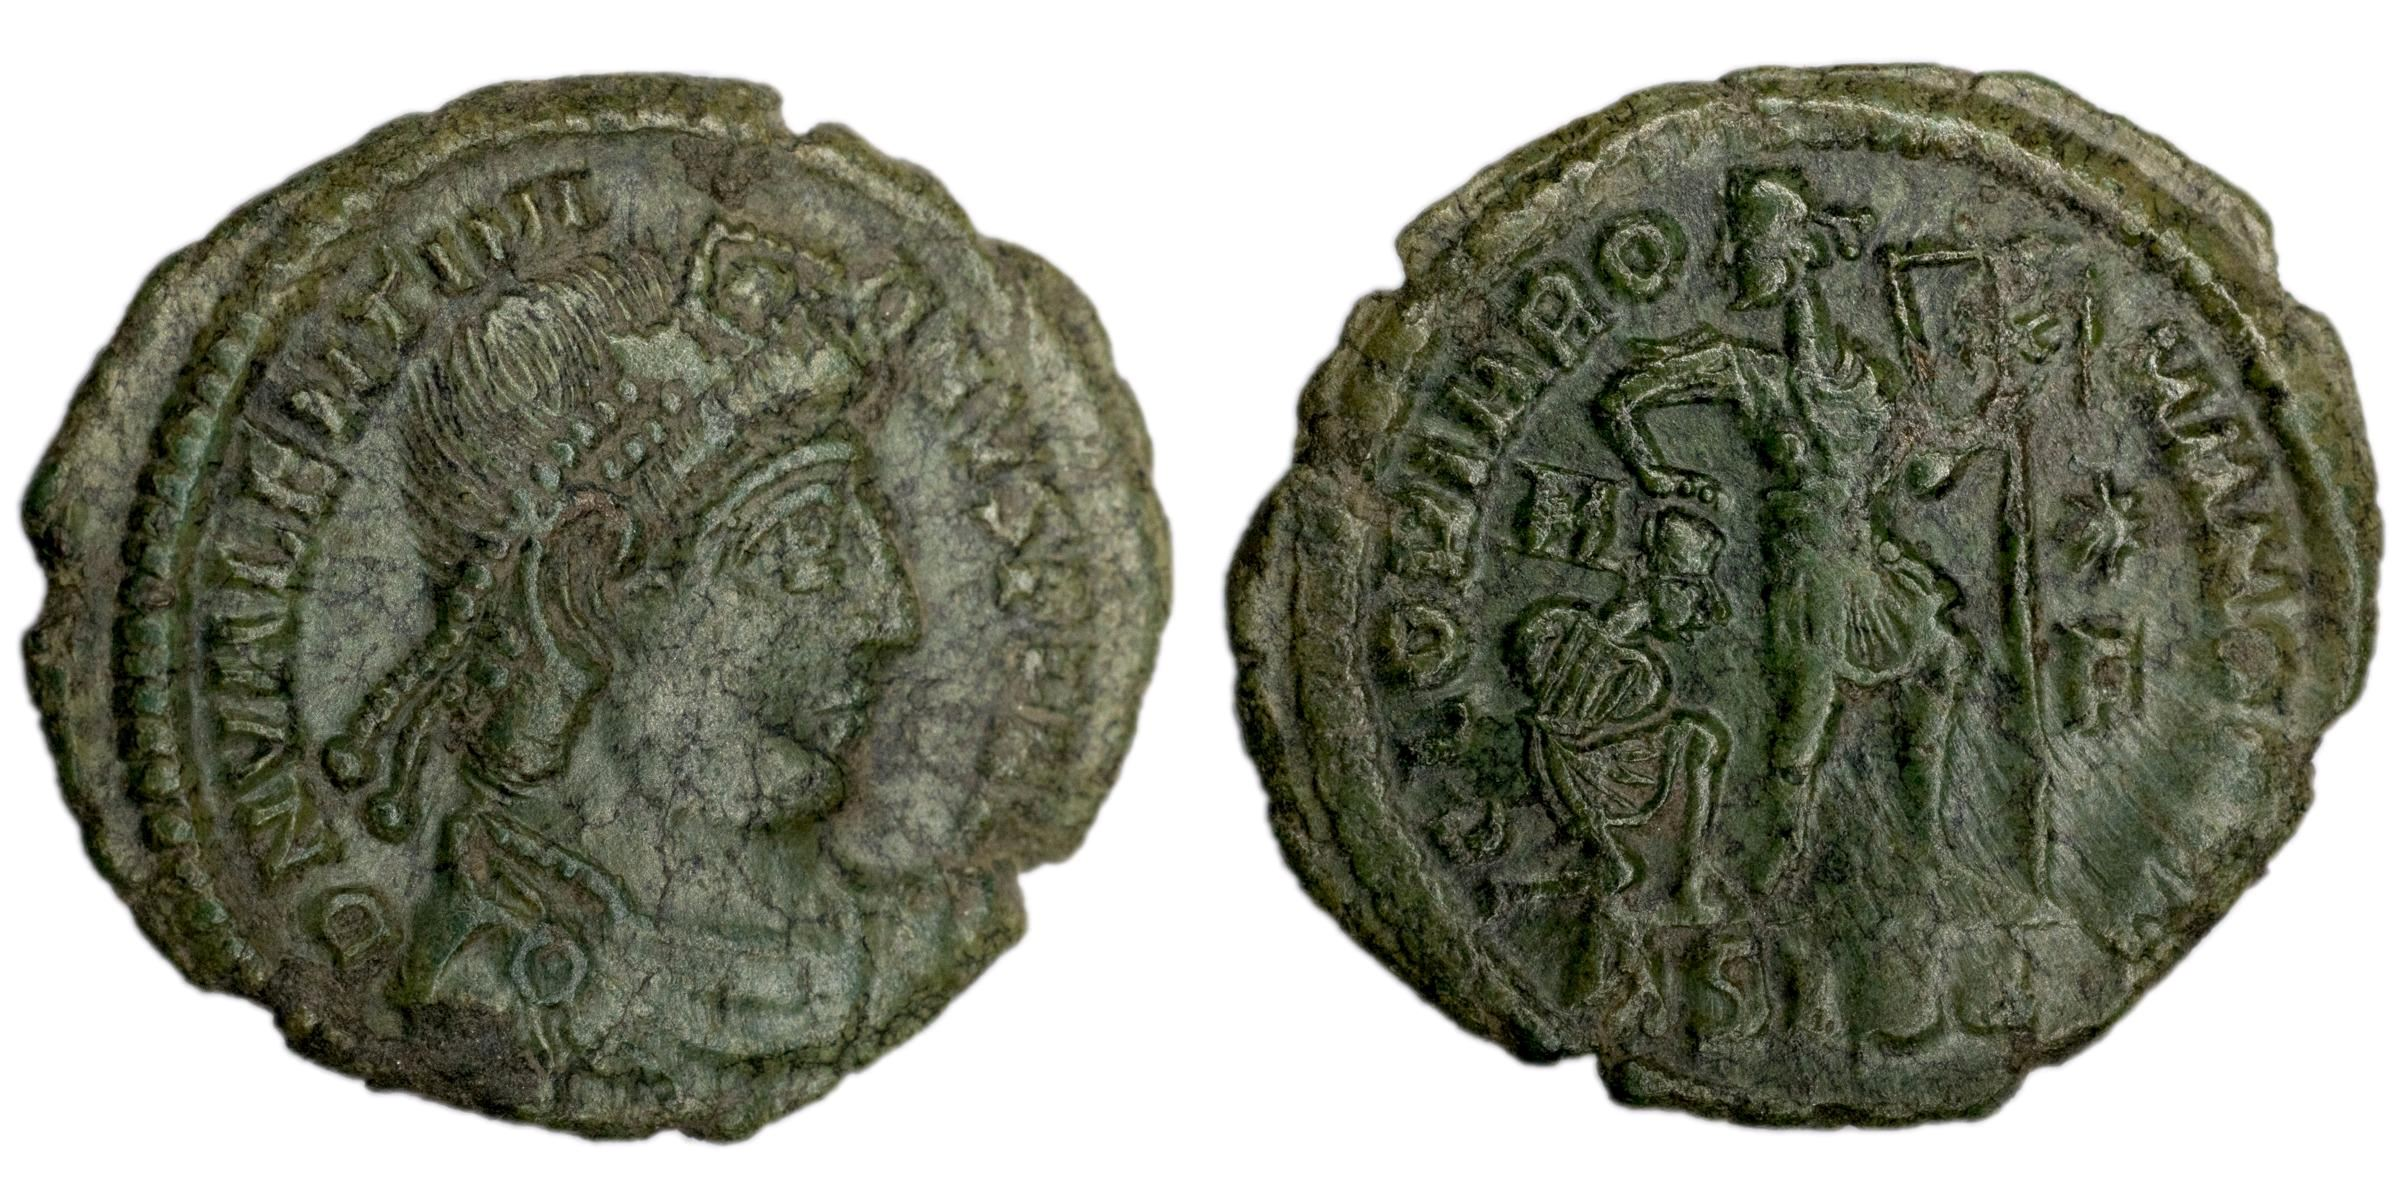 /Files/Images/Coinsite/CoinDB/Valentinianus1.jpg